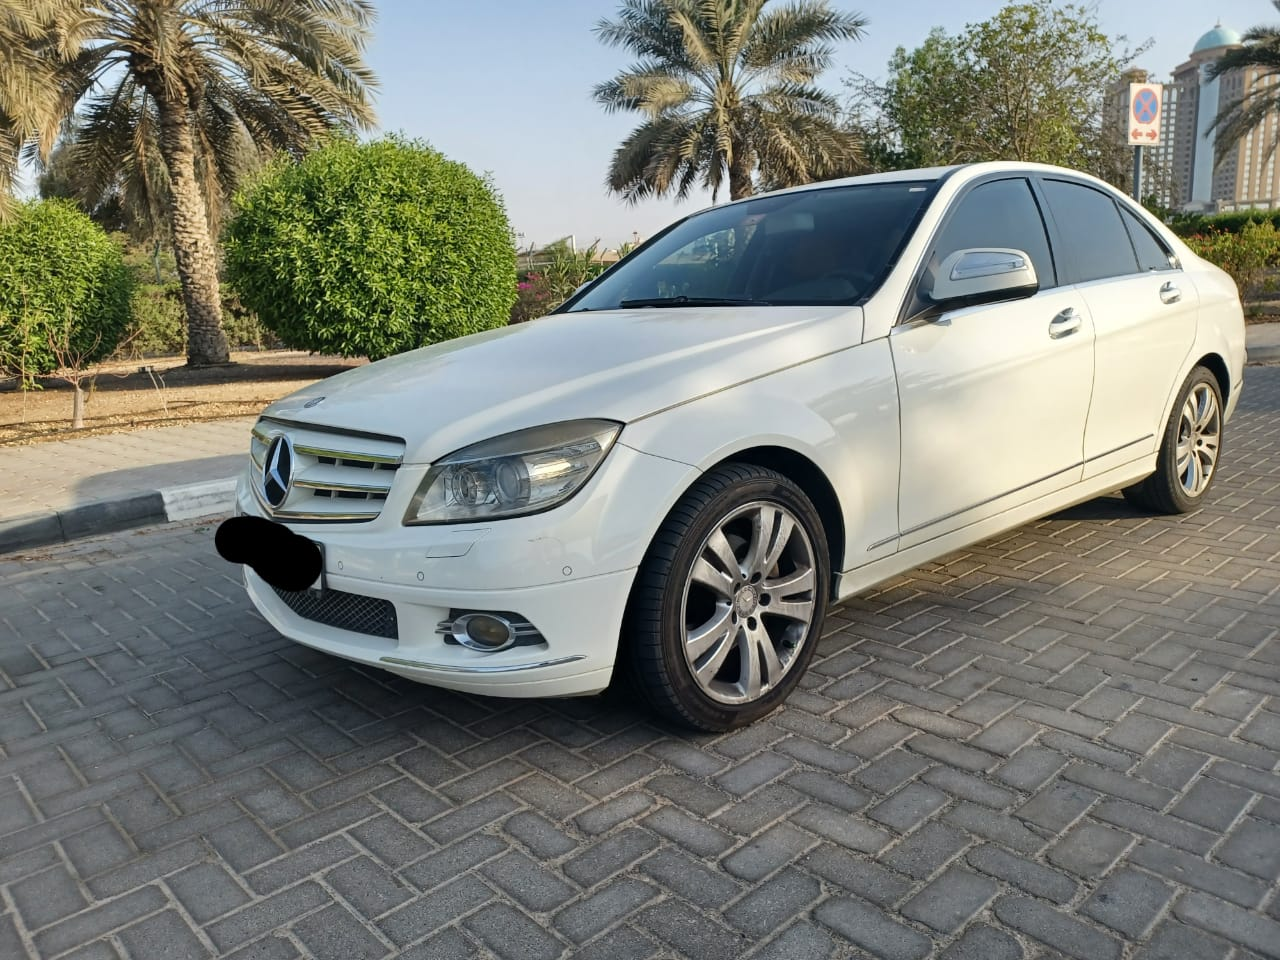 Used Mercedes-Benz C 250 2008 For Sale In Dubai